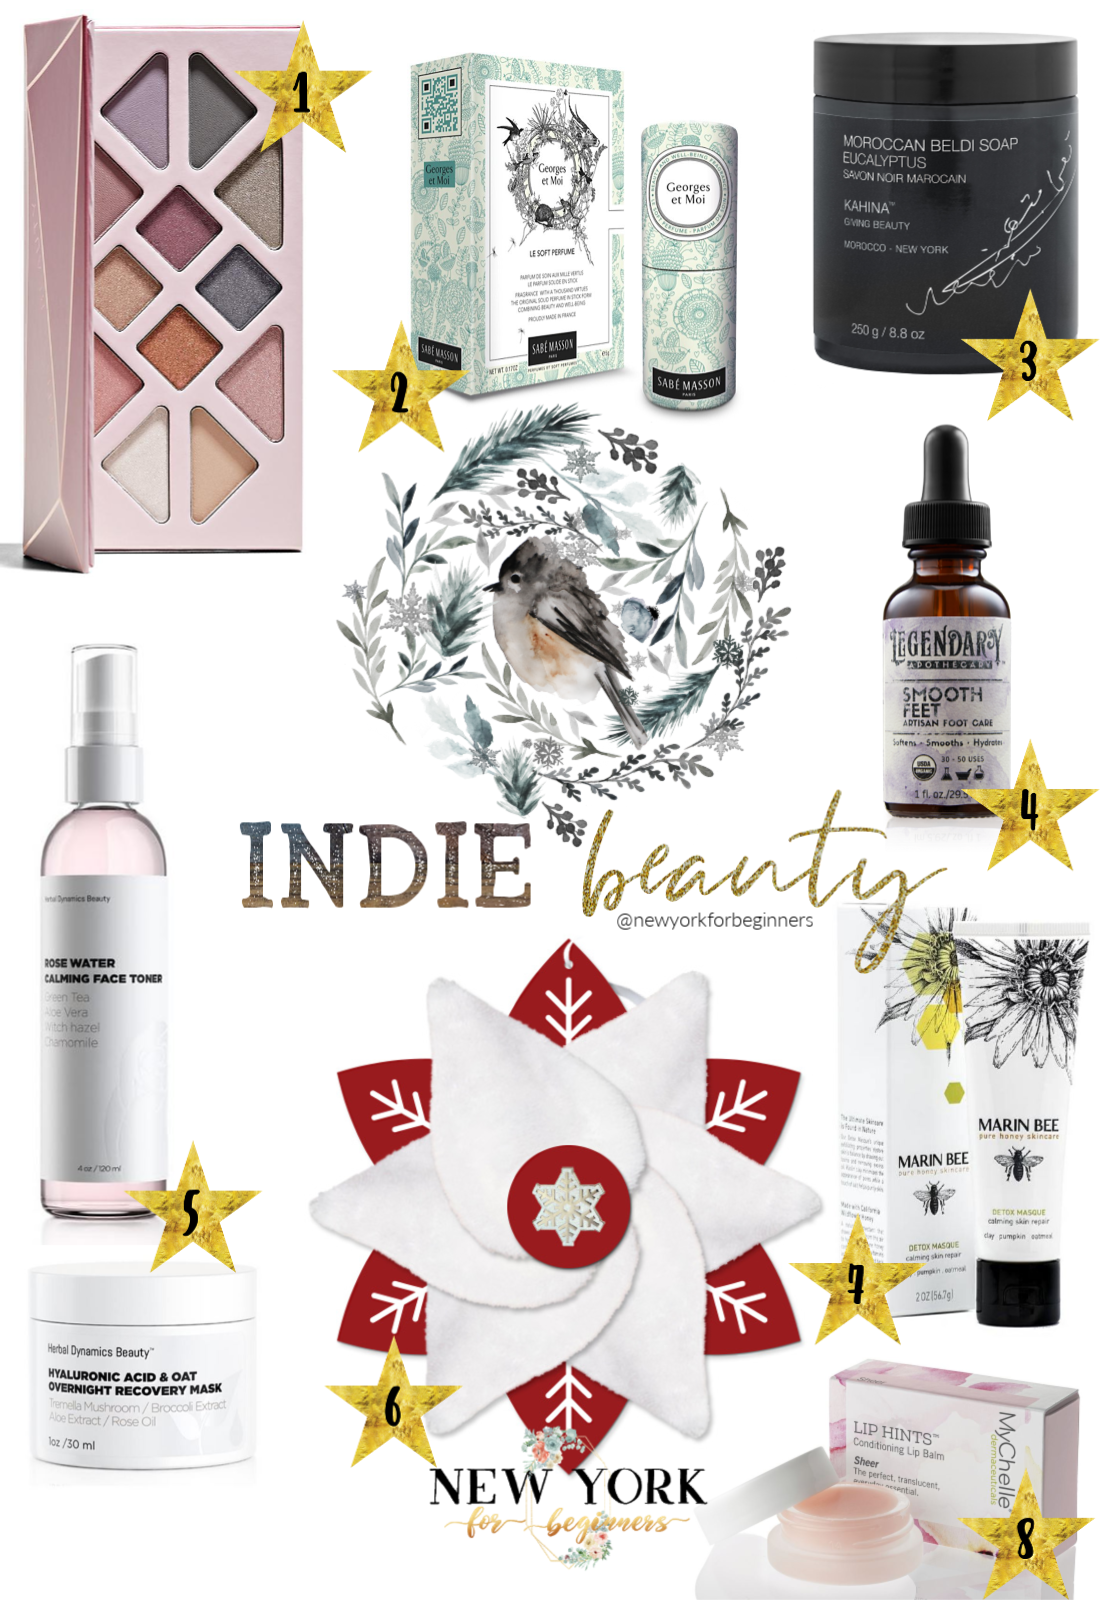 Indie Beauty a holiday gift guide with niche gifts from the Indie Beauty Expo